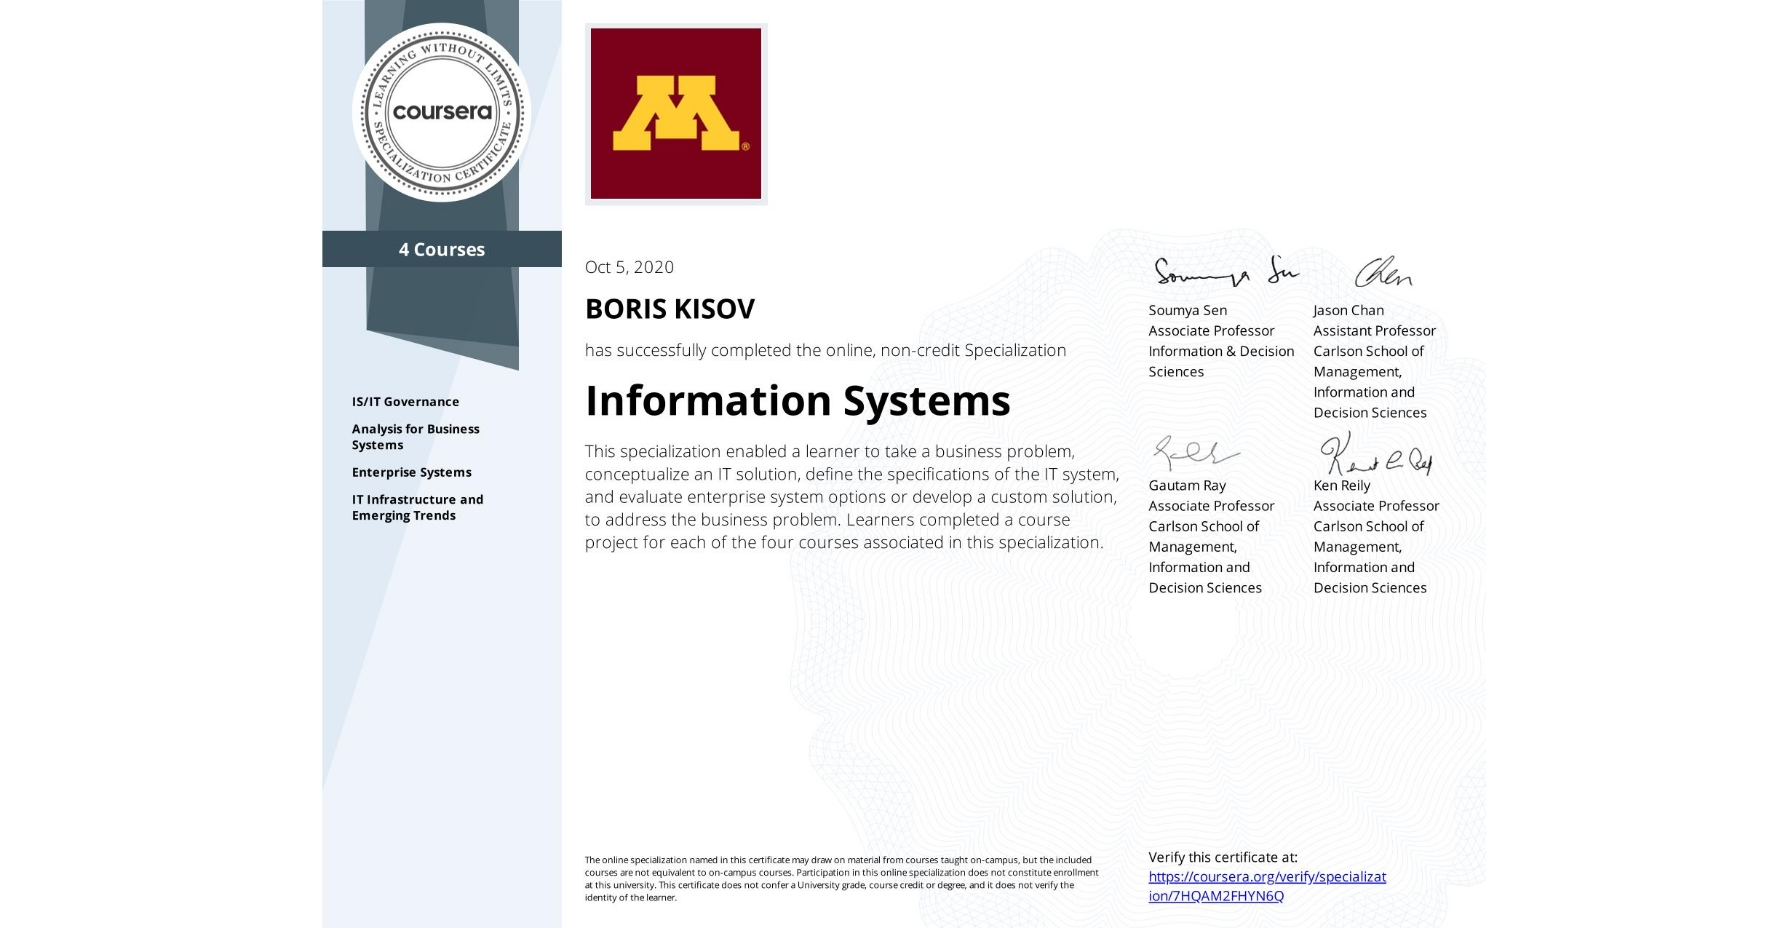 View certificate for BORIS KISOV, Information Systems, offered through Coursera. This specialization enabled a learner to take a business problem, conceptualize an IT solution, define the specifications of the IT system, and evaluate enterprise system options or develop a custom solution, to address the business problem.  Learners completed a course project for each of the four courses associated in this specialization.